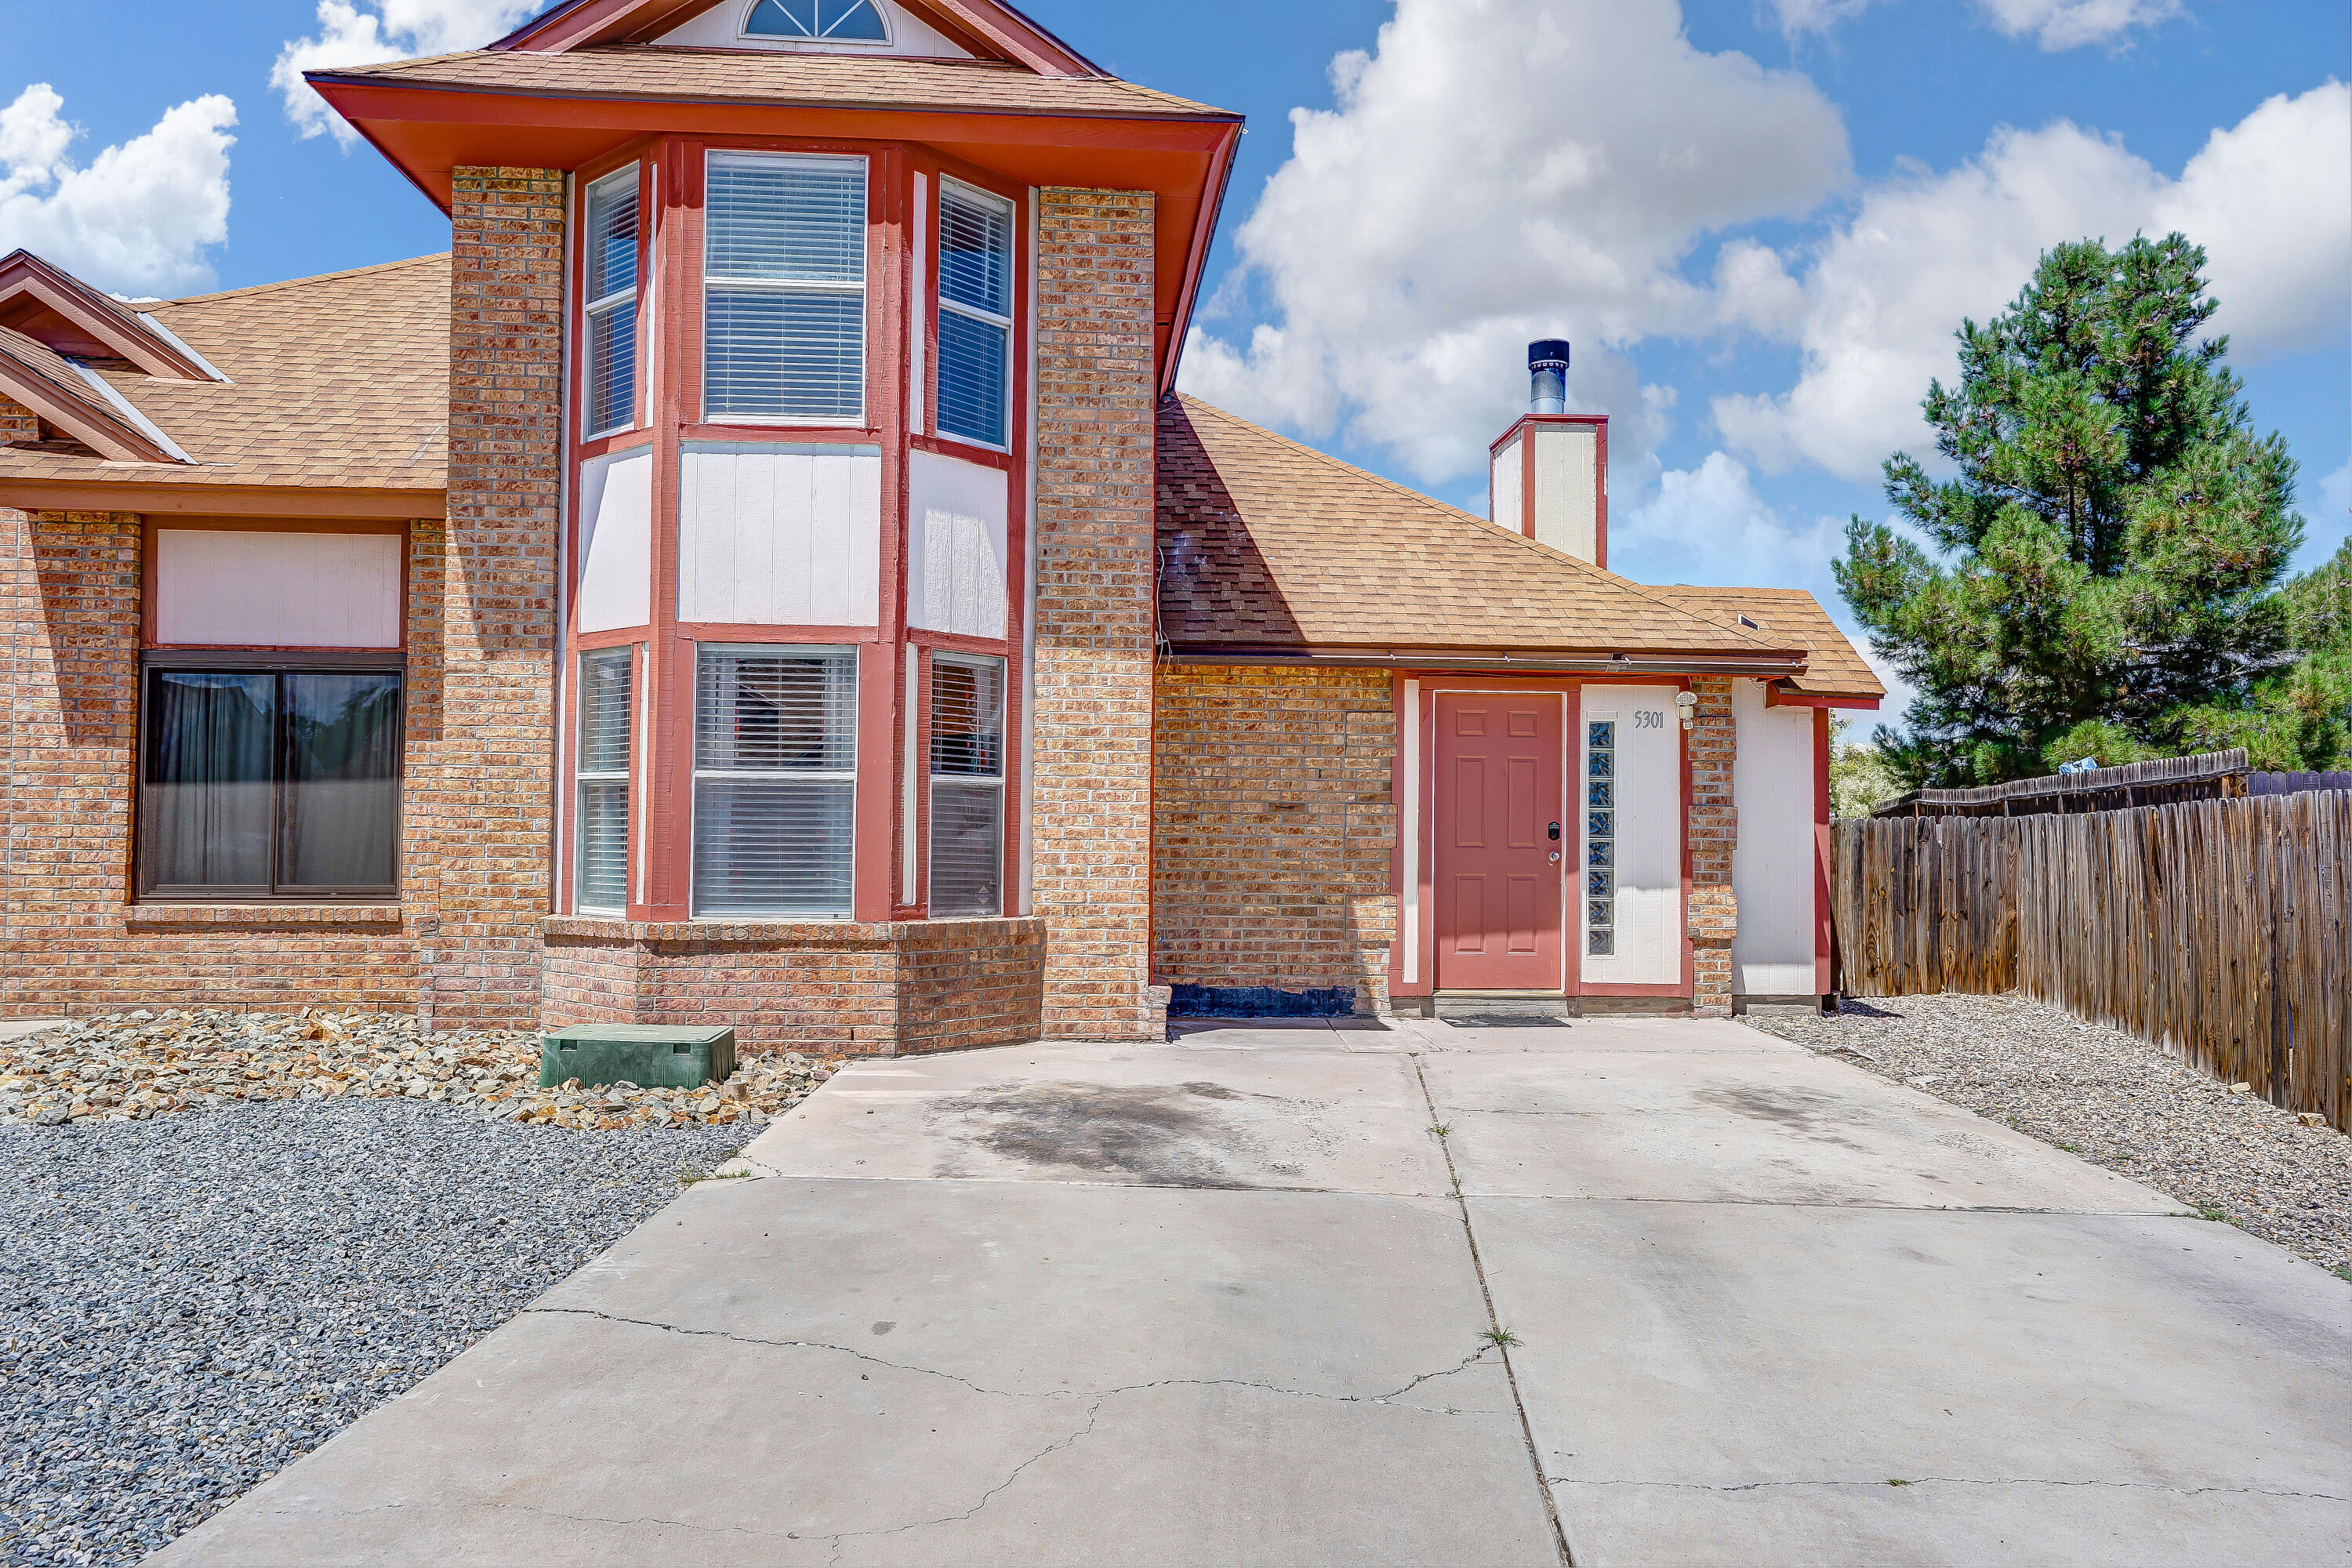 Welcome Home to this Taylor Ranch townhome! This home is located just minutes from both Bosque and Petroglyph walking trails, and Mariposa Basin park is just around the corner! This home features Cathedral ceilings, bay windows, and great natural light! Located on a large lot that has been partially landscaped already and offers mountain view, this home is perfect for all of your outdoor entertainment needs! Large unfinished backyard shed offers opportunity to finish to meet your needs. Don't miss out on this 3 bed, 2 bath home with updated light fixtures, newer kitchen appliances and carpet!